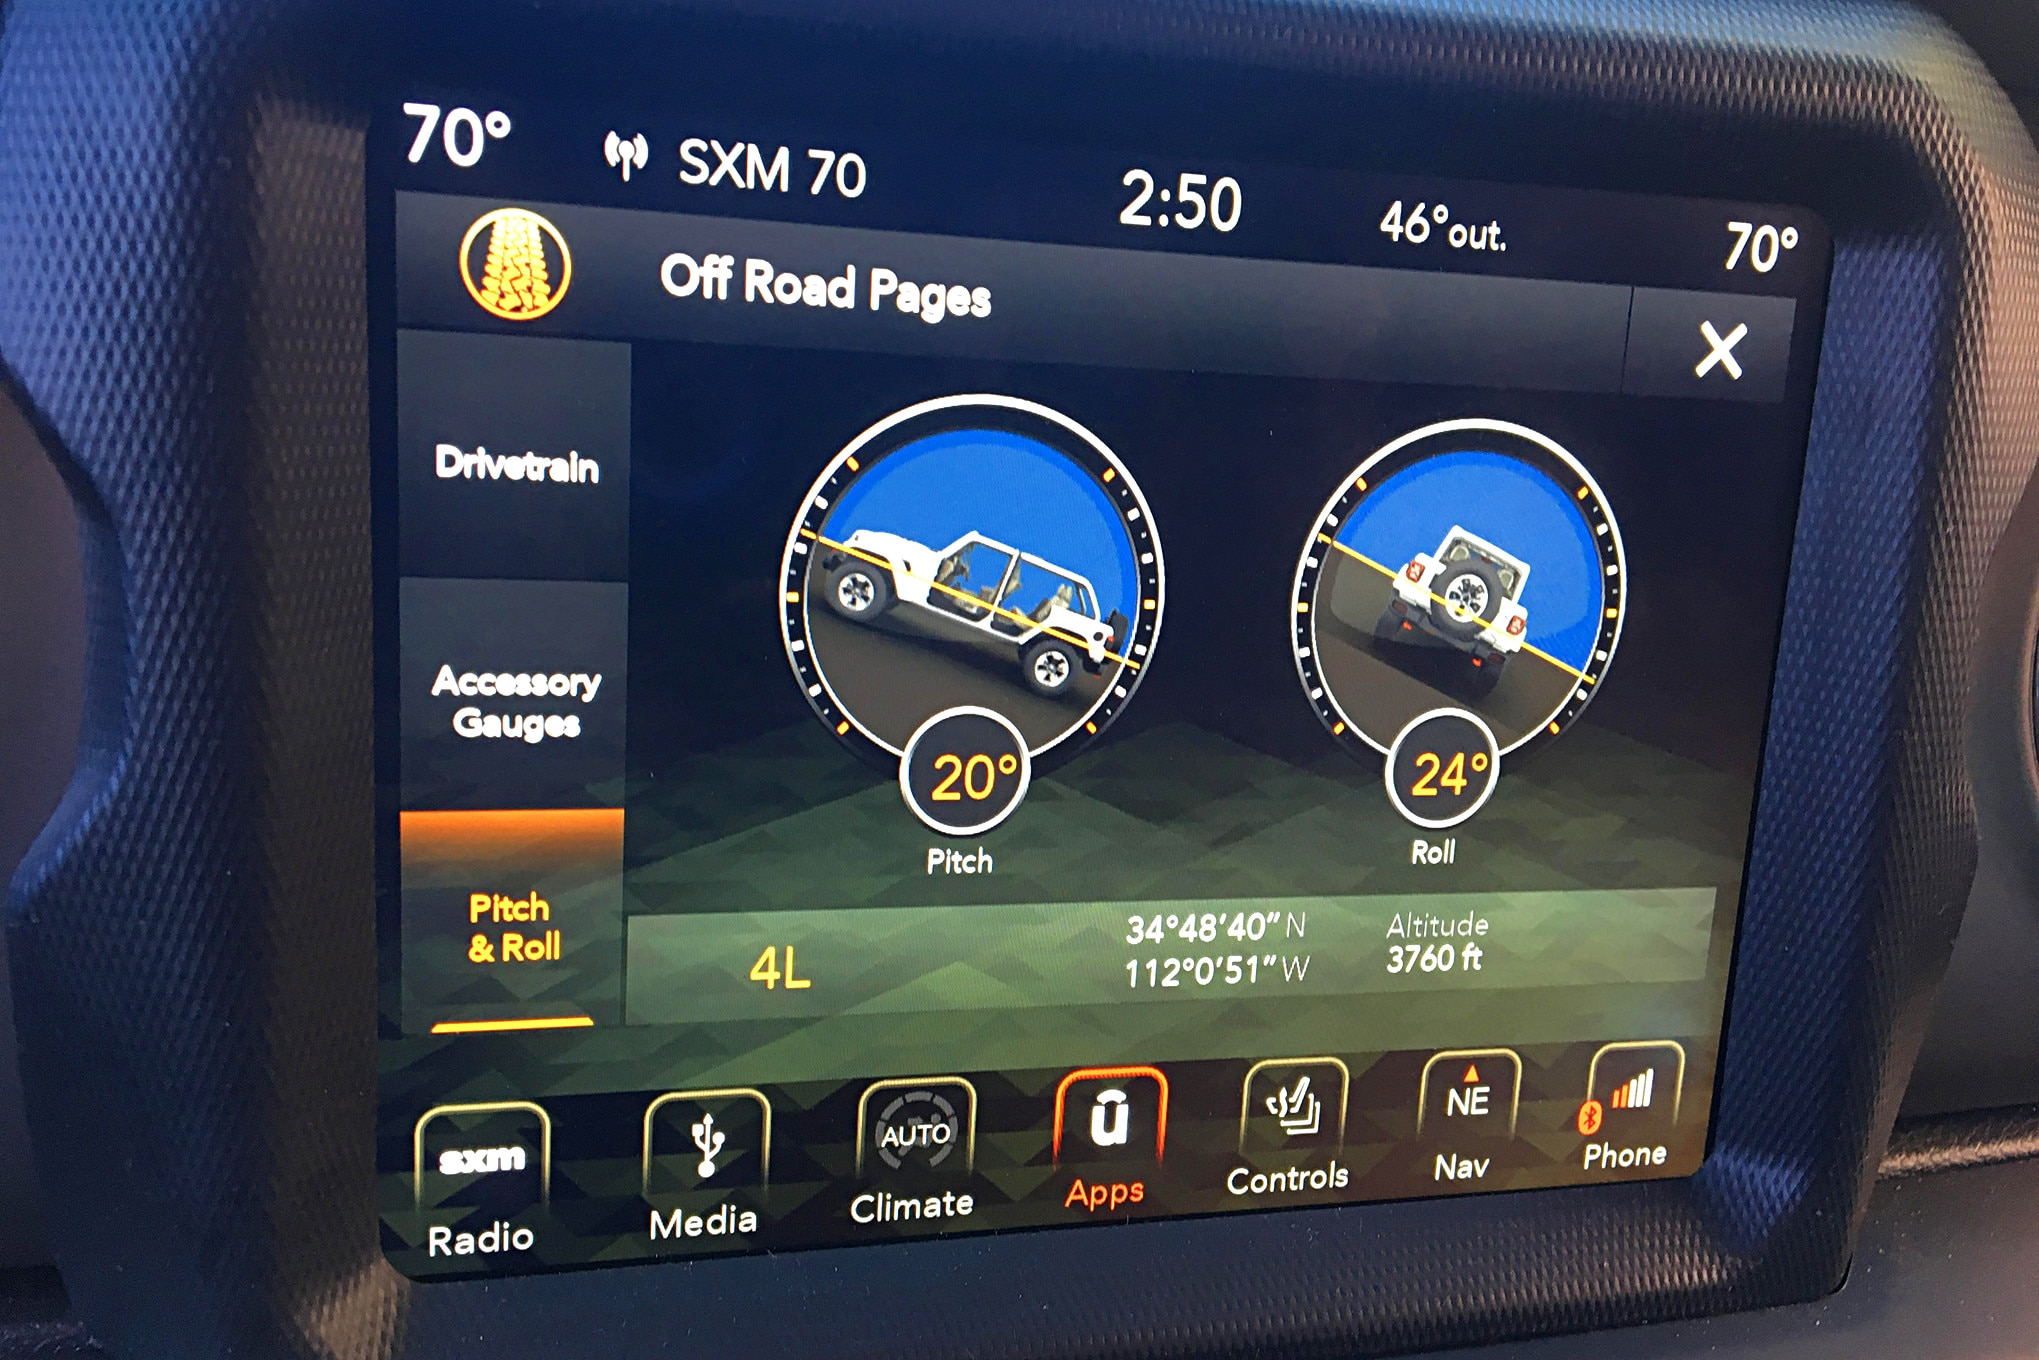 One of the cool features of the new JL is the Off-road Pages, which can alternate from pitch and roll to drivetrain status to a 5-gauge cluster.